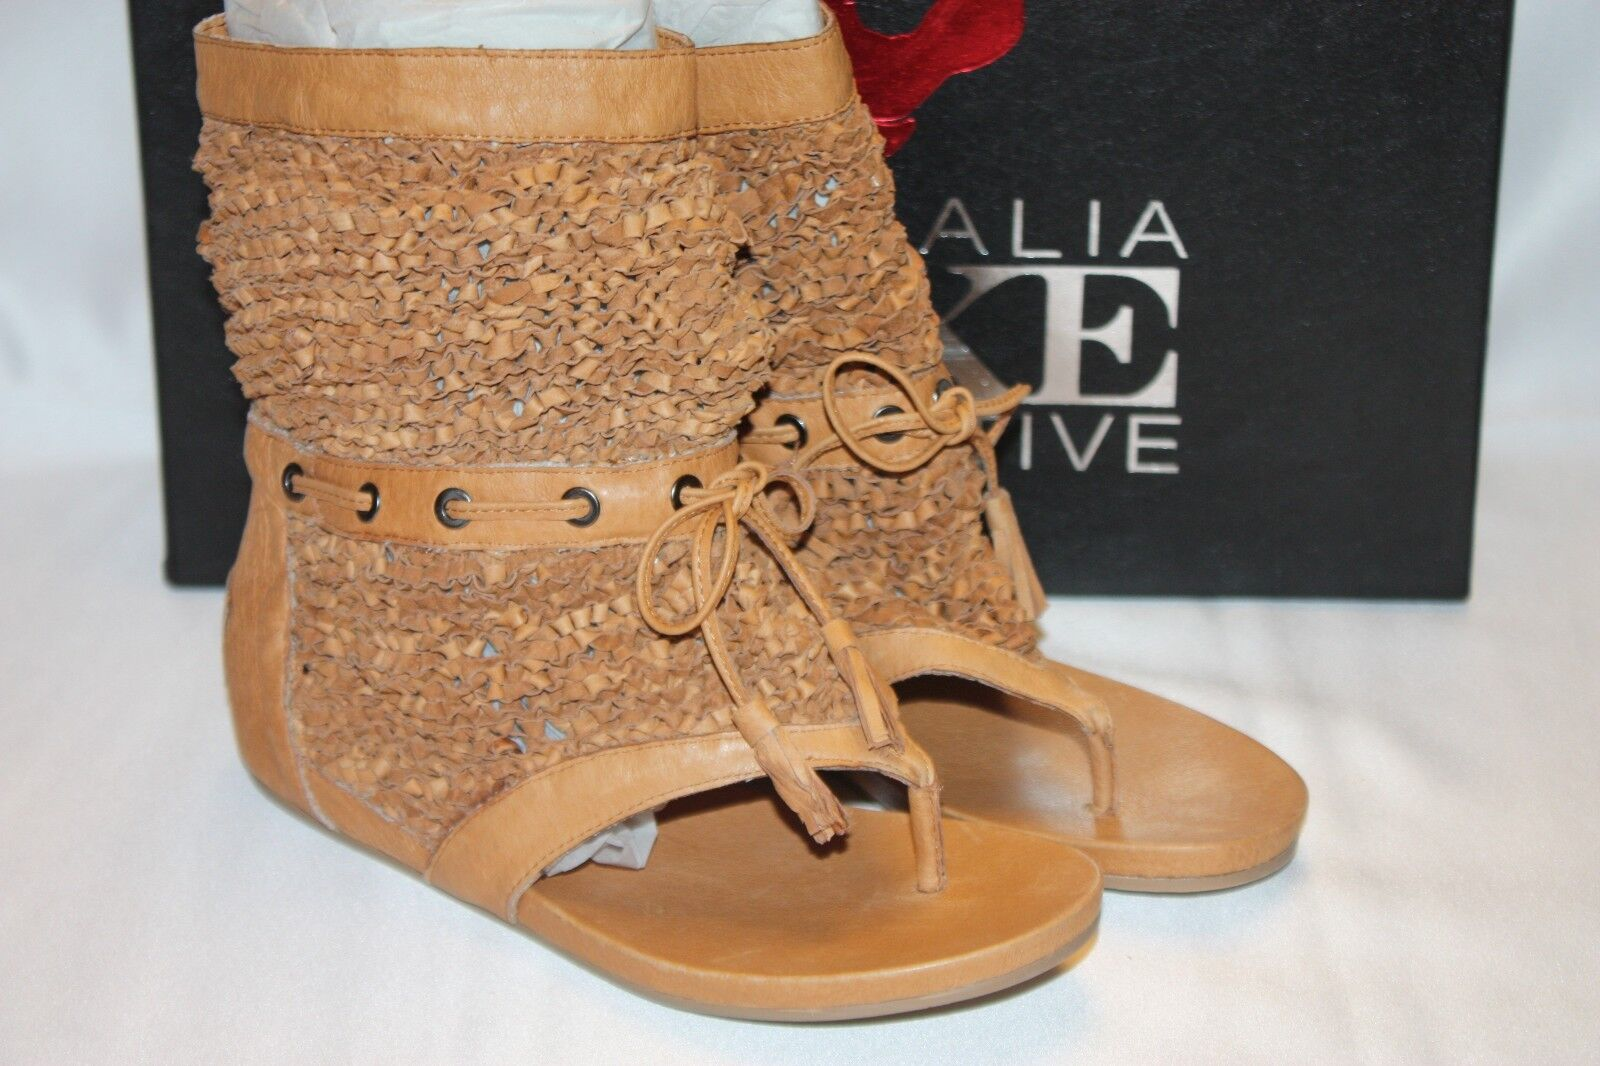 NEW  NIB  AUSTRALIA LUXE COLLECTIVE Tan Woven Leather FERNANDEZ Sandals Sz 5